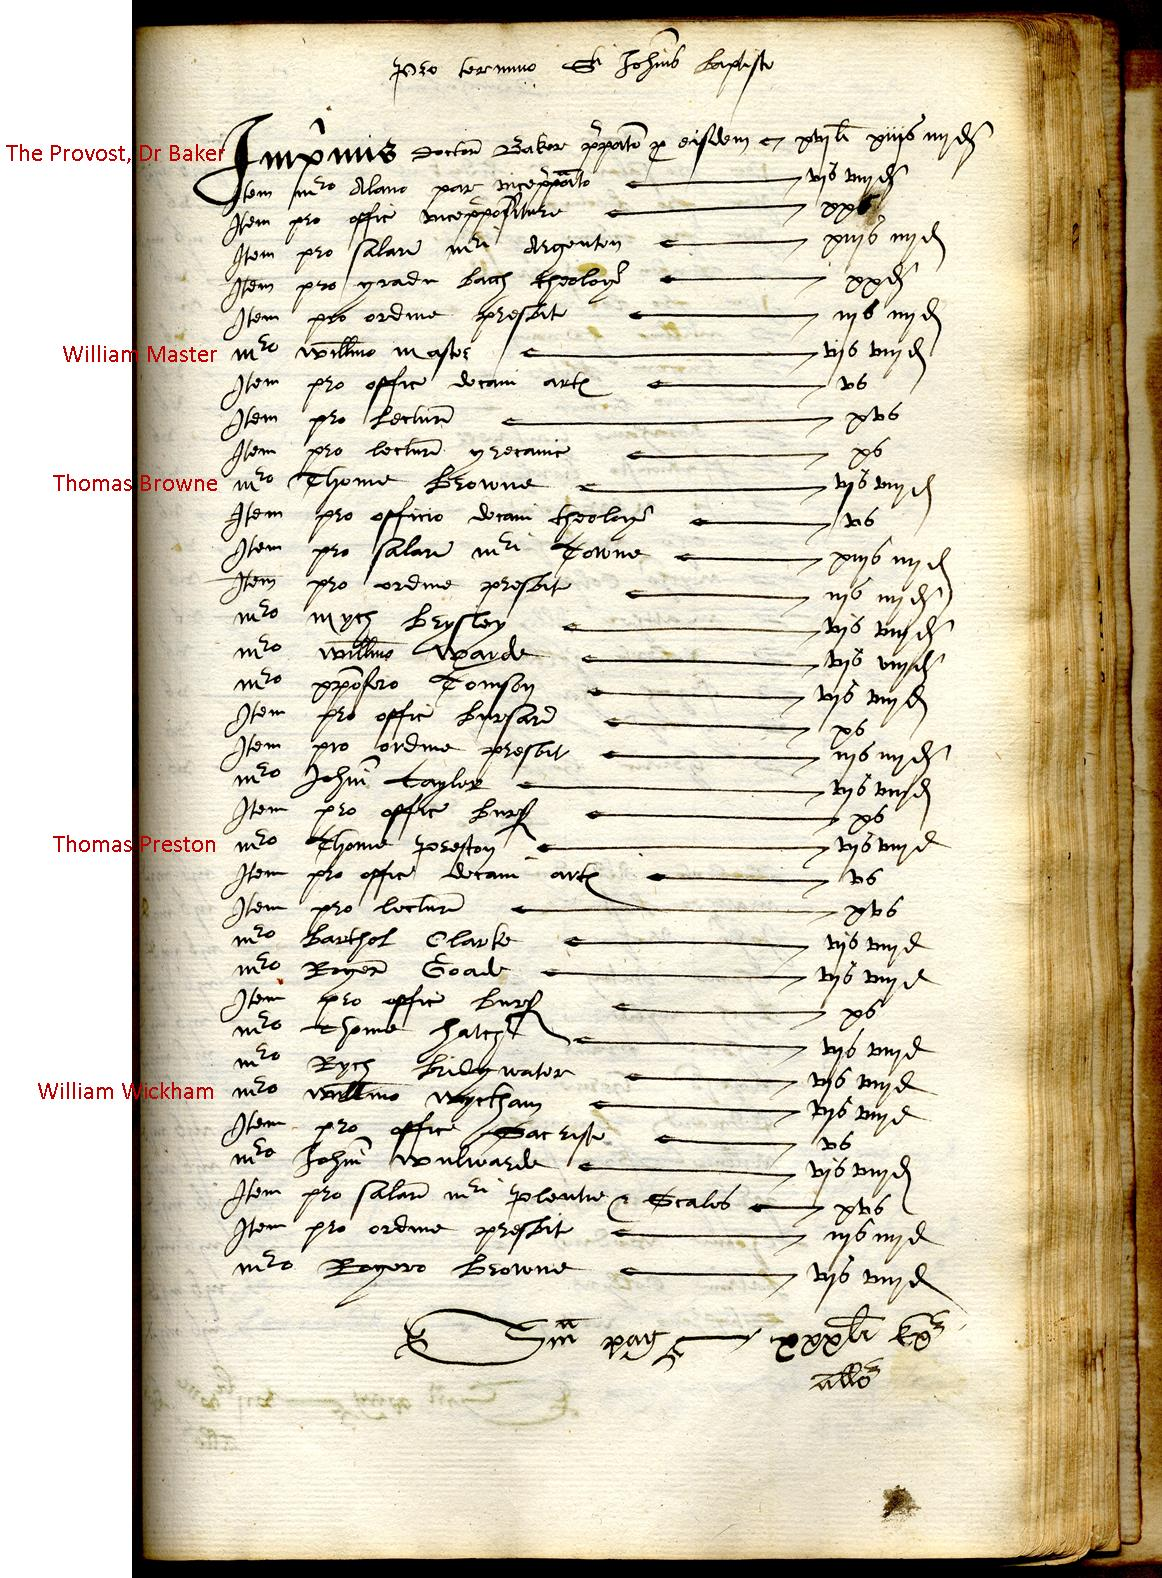 The list of Fellows at the time of Elizabeth's visit. (KCAR/5/1/1/14 fellows)